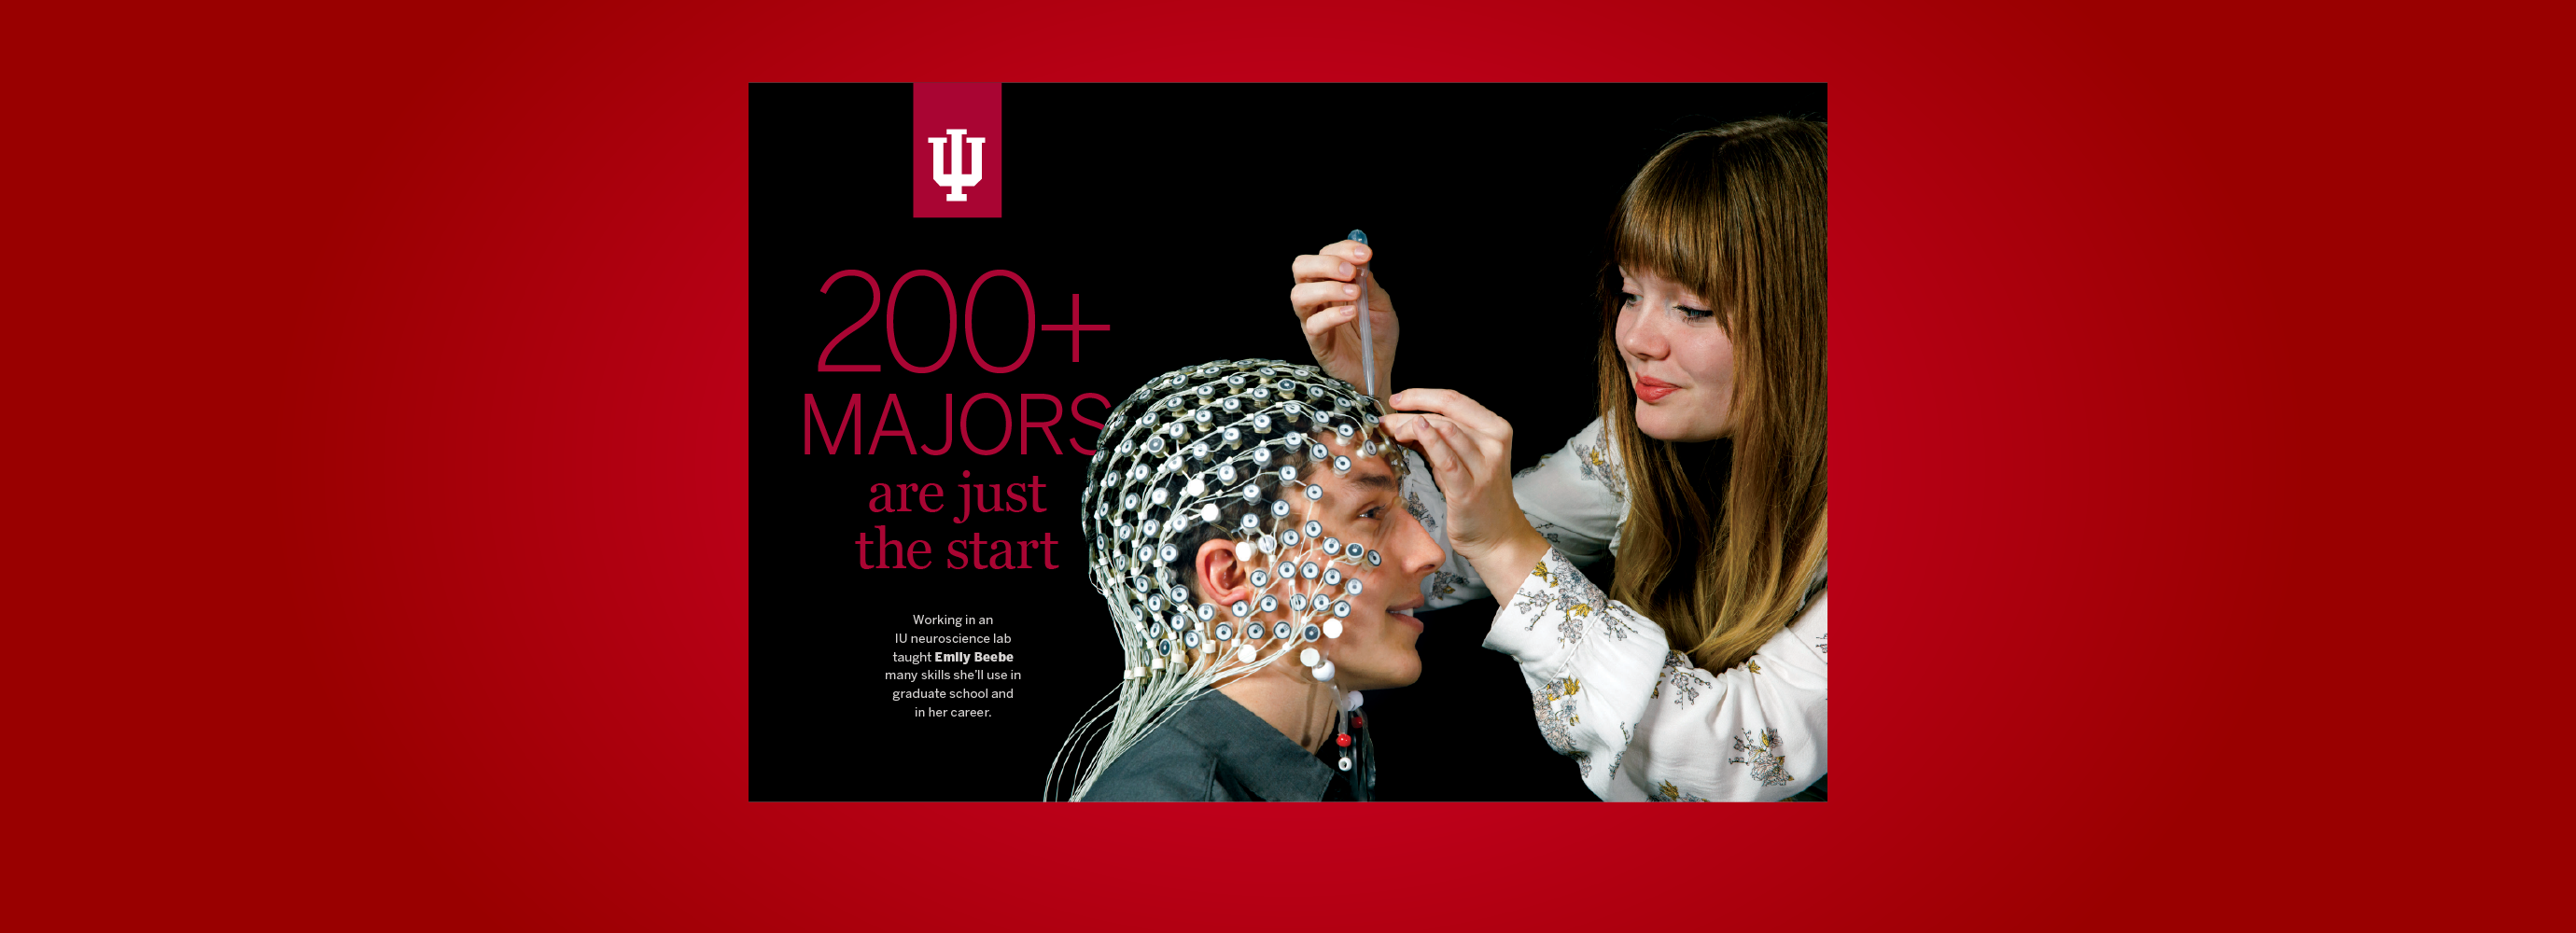 """Postcard with headline """"200+ Majors are just the start"""" on a red background"""